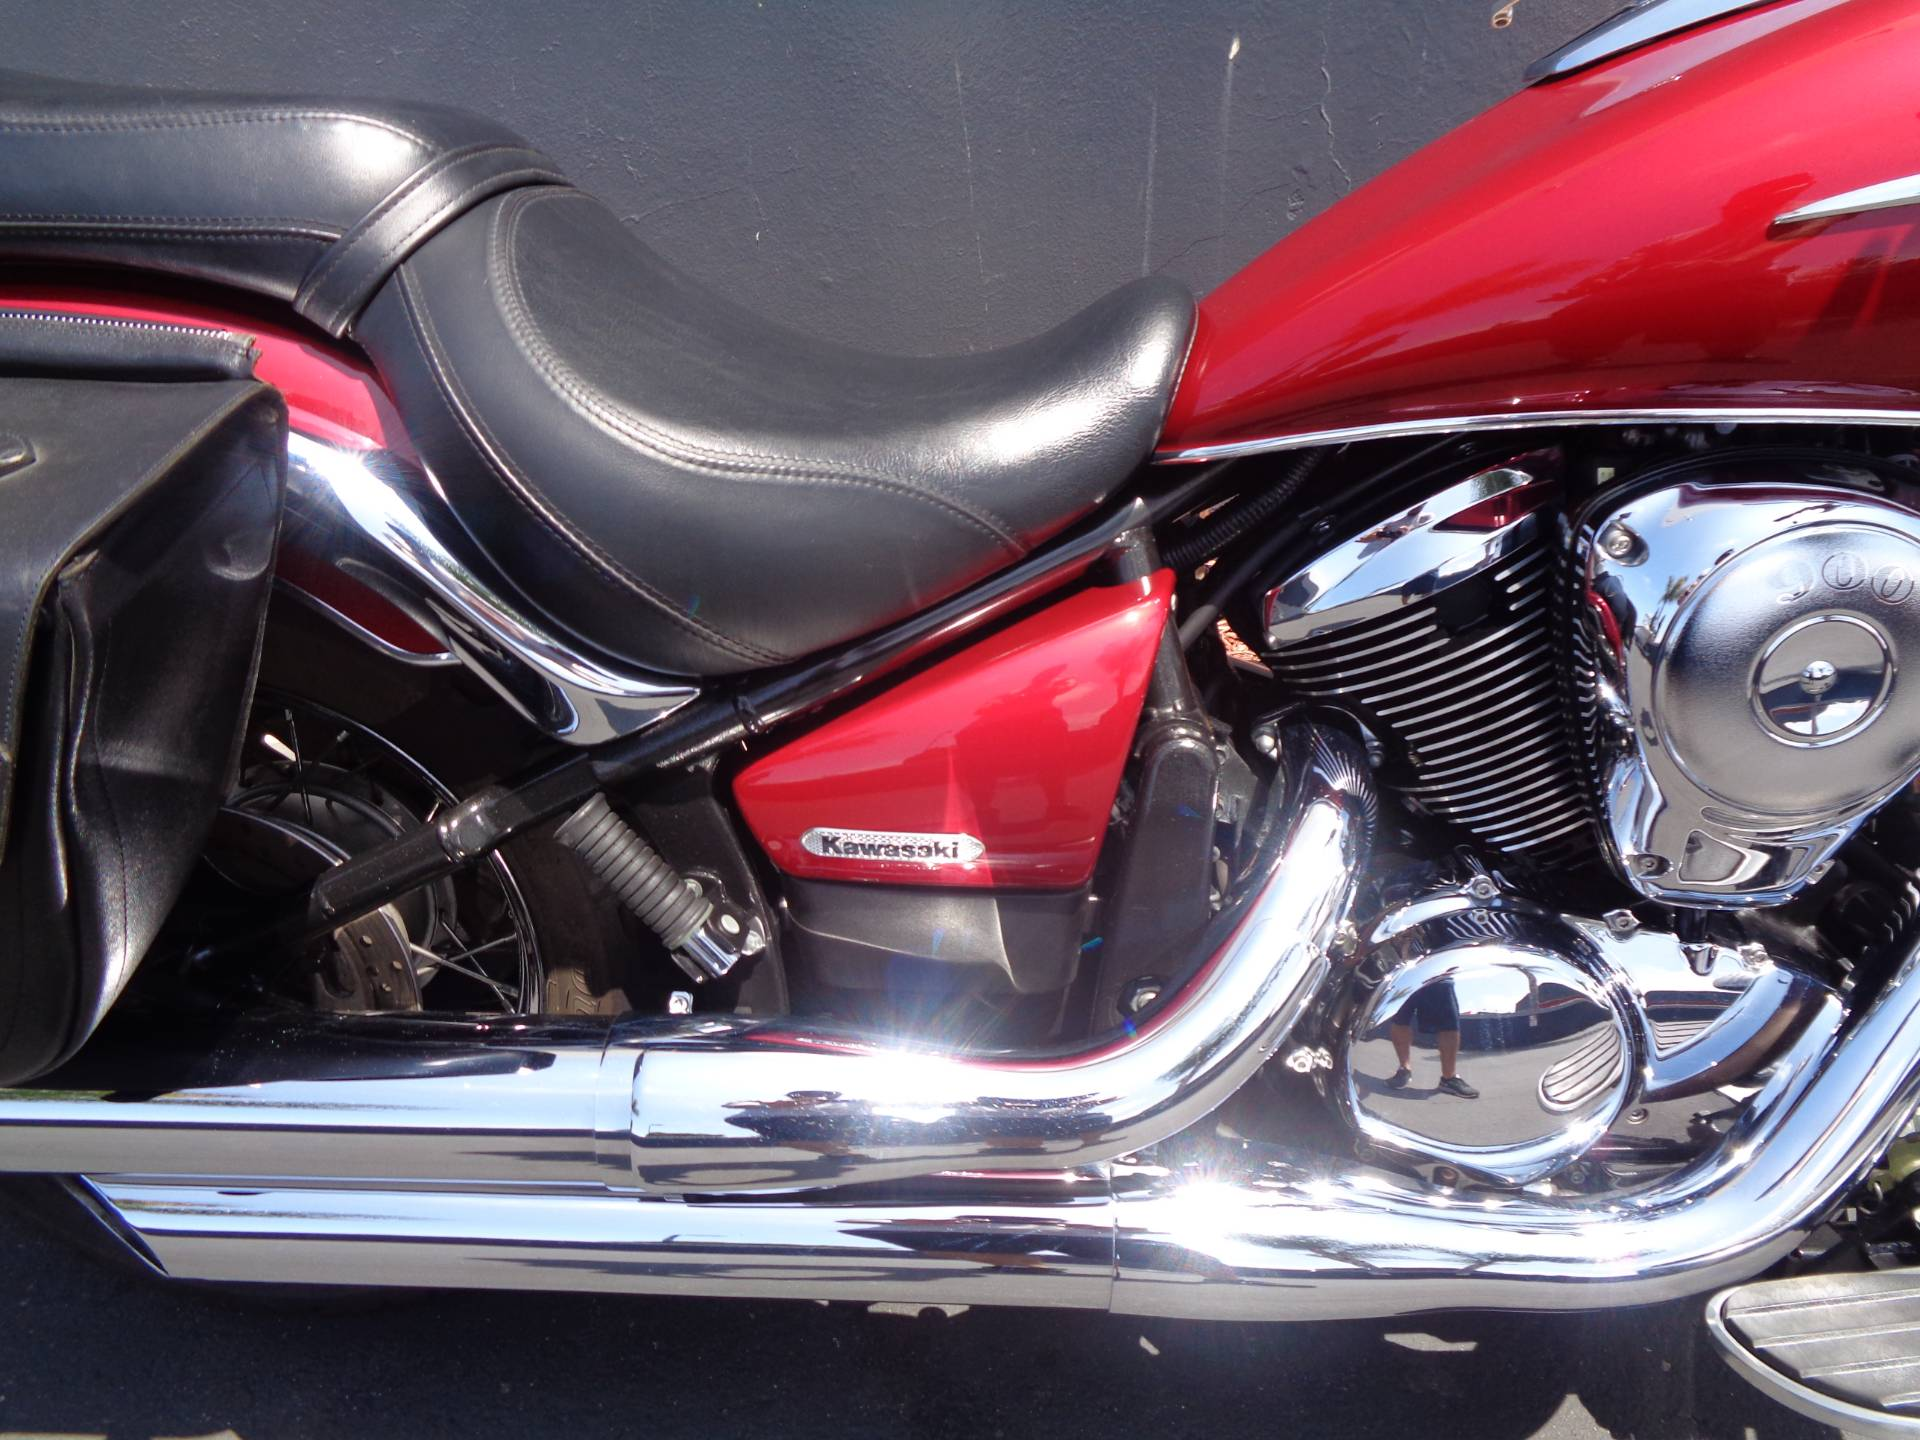 2007 Kawasaki Vulcan® 1600 Classic in Chula Vista, California - Photo 7